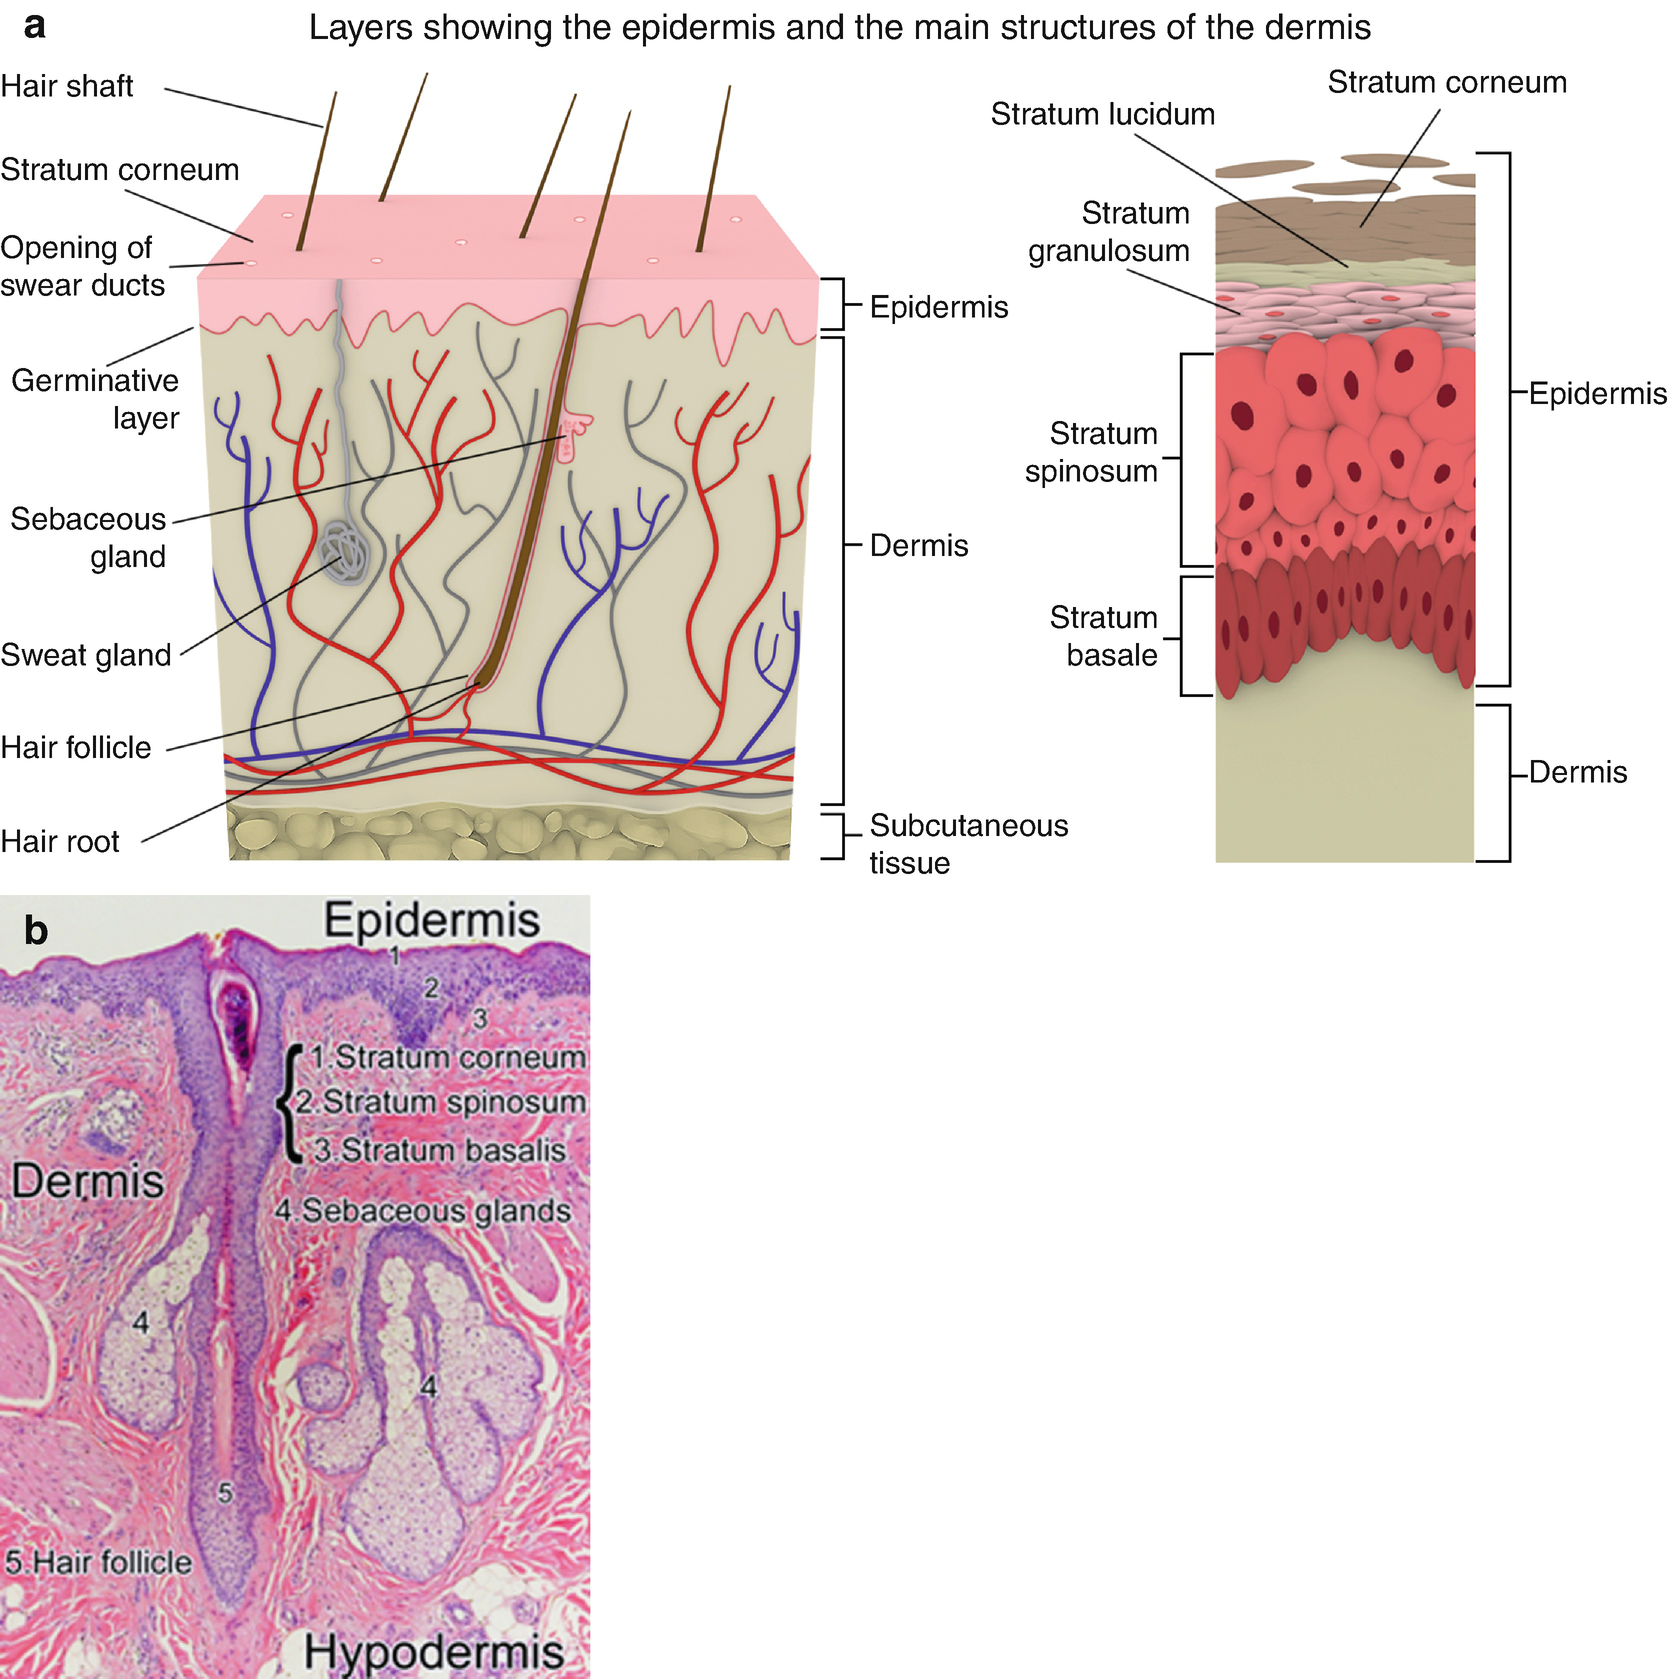 Introduction: Skin Anatomy, Imaging Approaches, and Dermatology